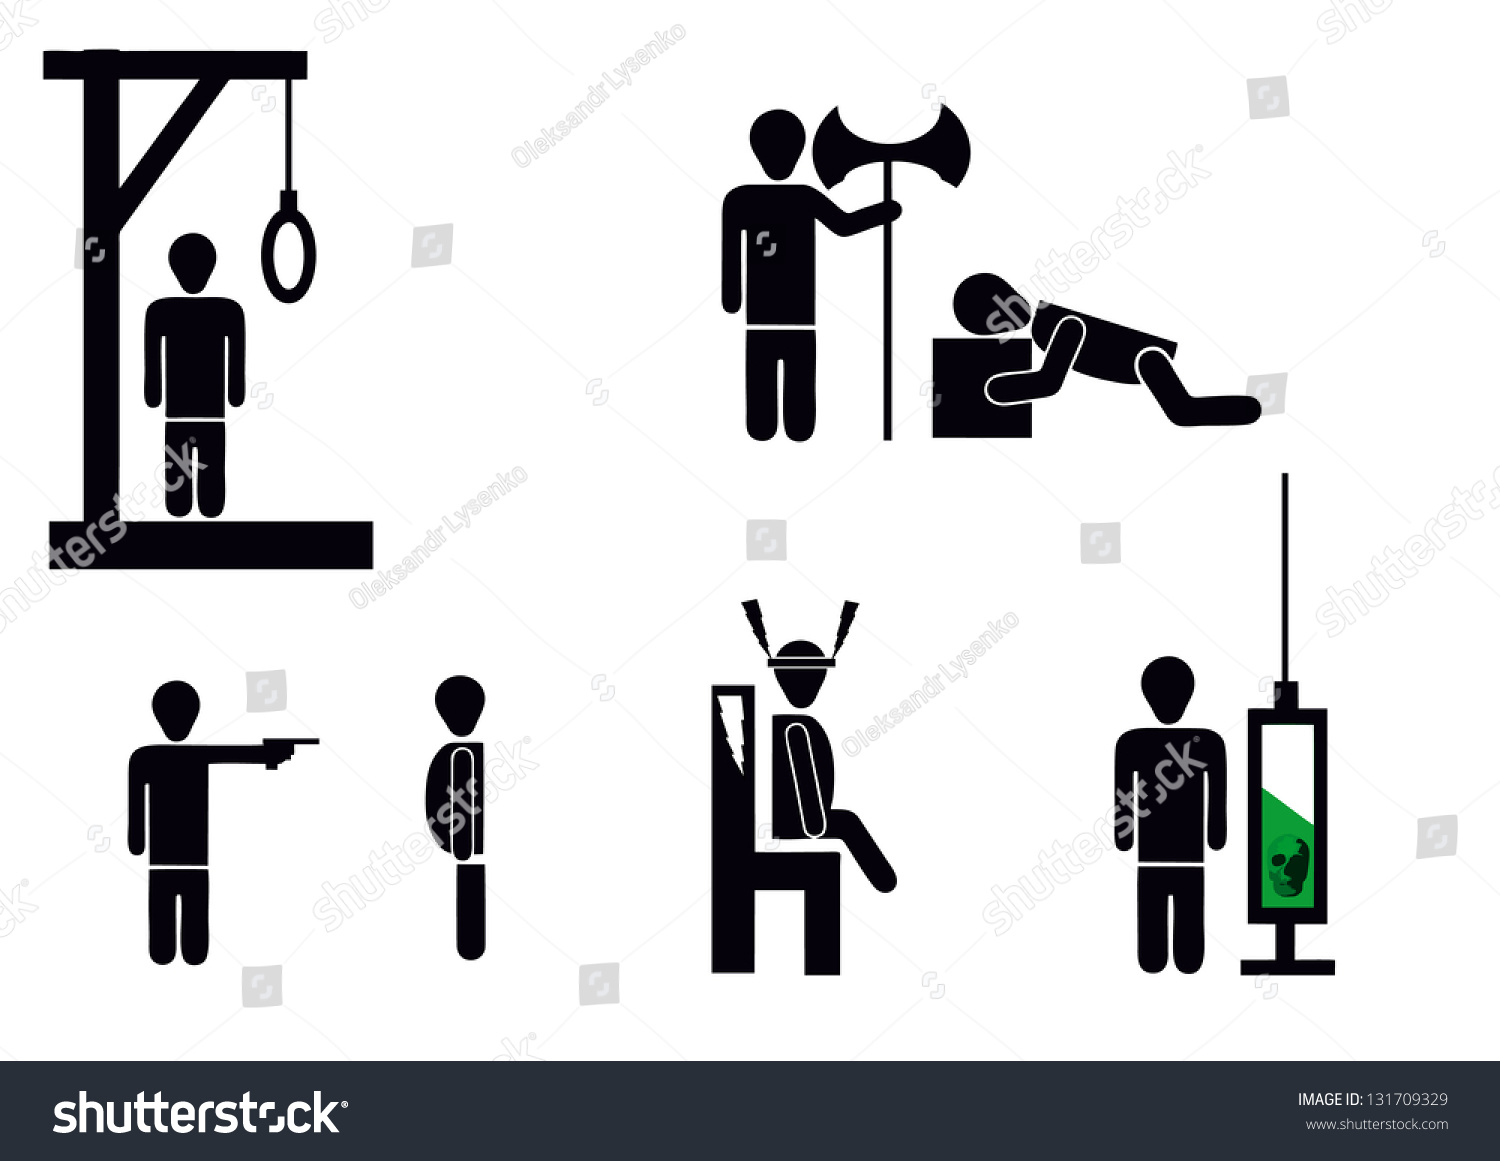 anylsis essay death penalty View essay - rhetorical analysis from cis 111 at kentucky rhetorical analysis: death penalty abstract this analysis is going to focus on three different images and their applications to the.